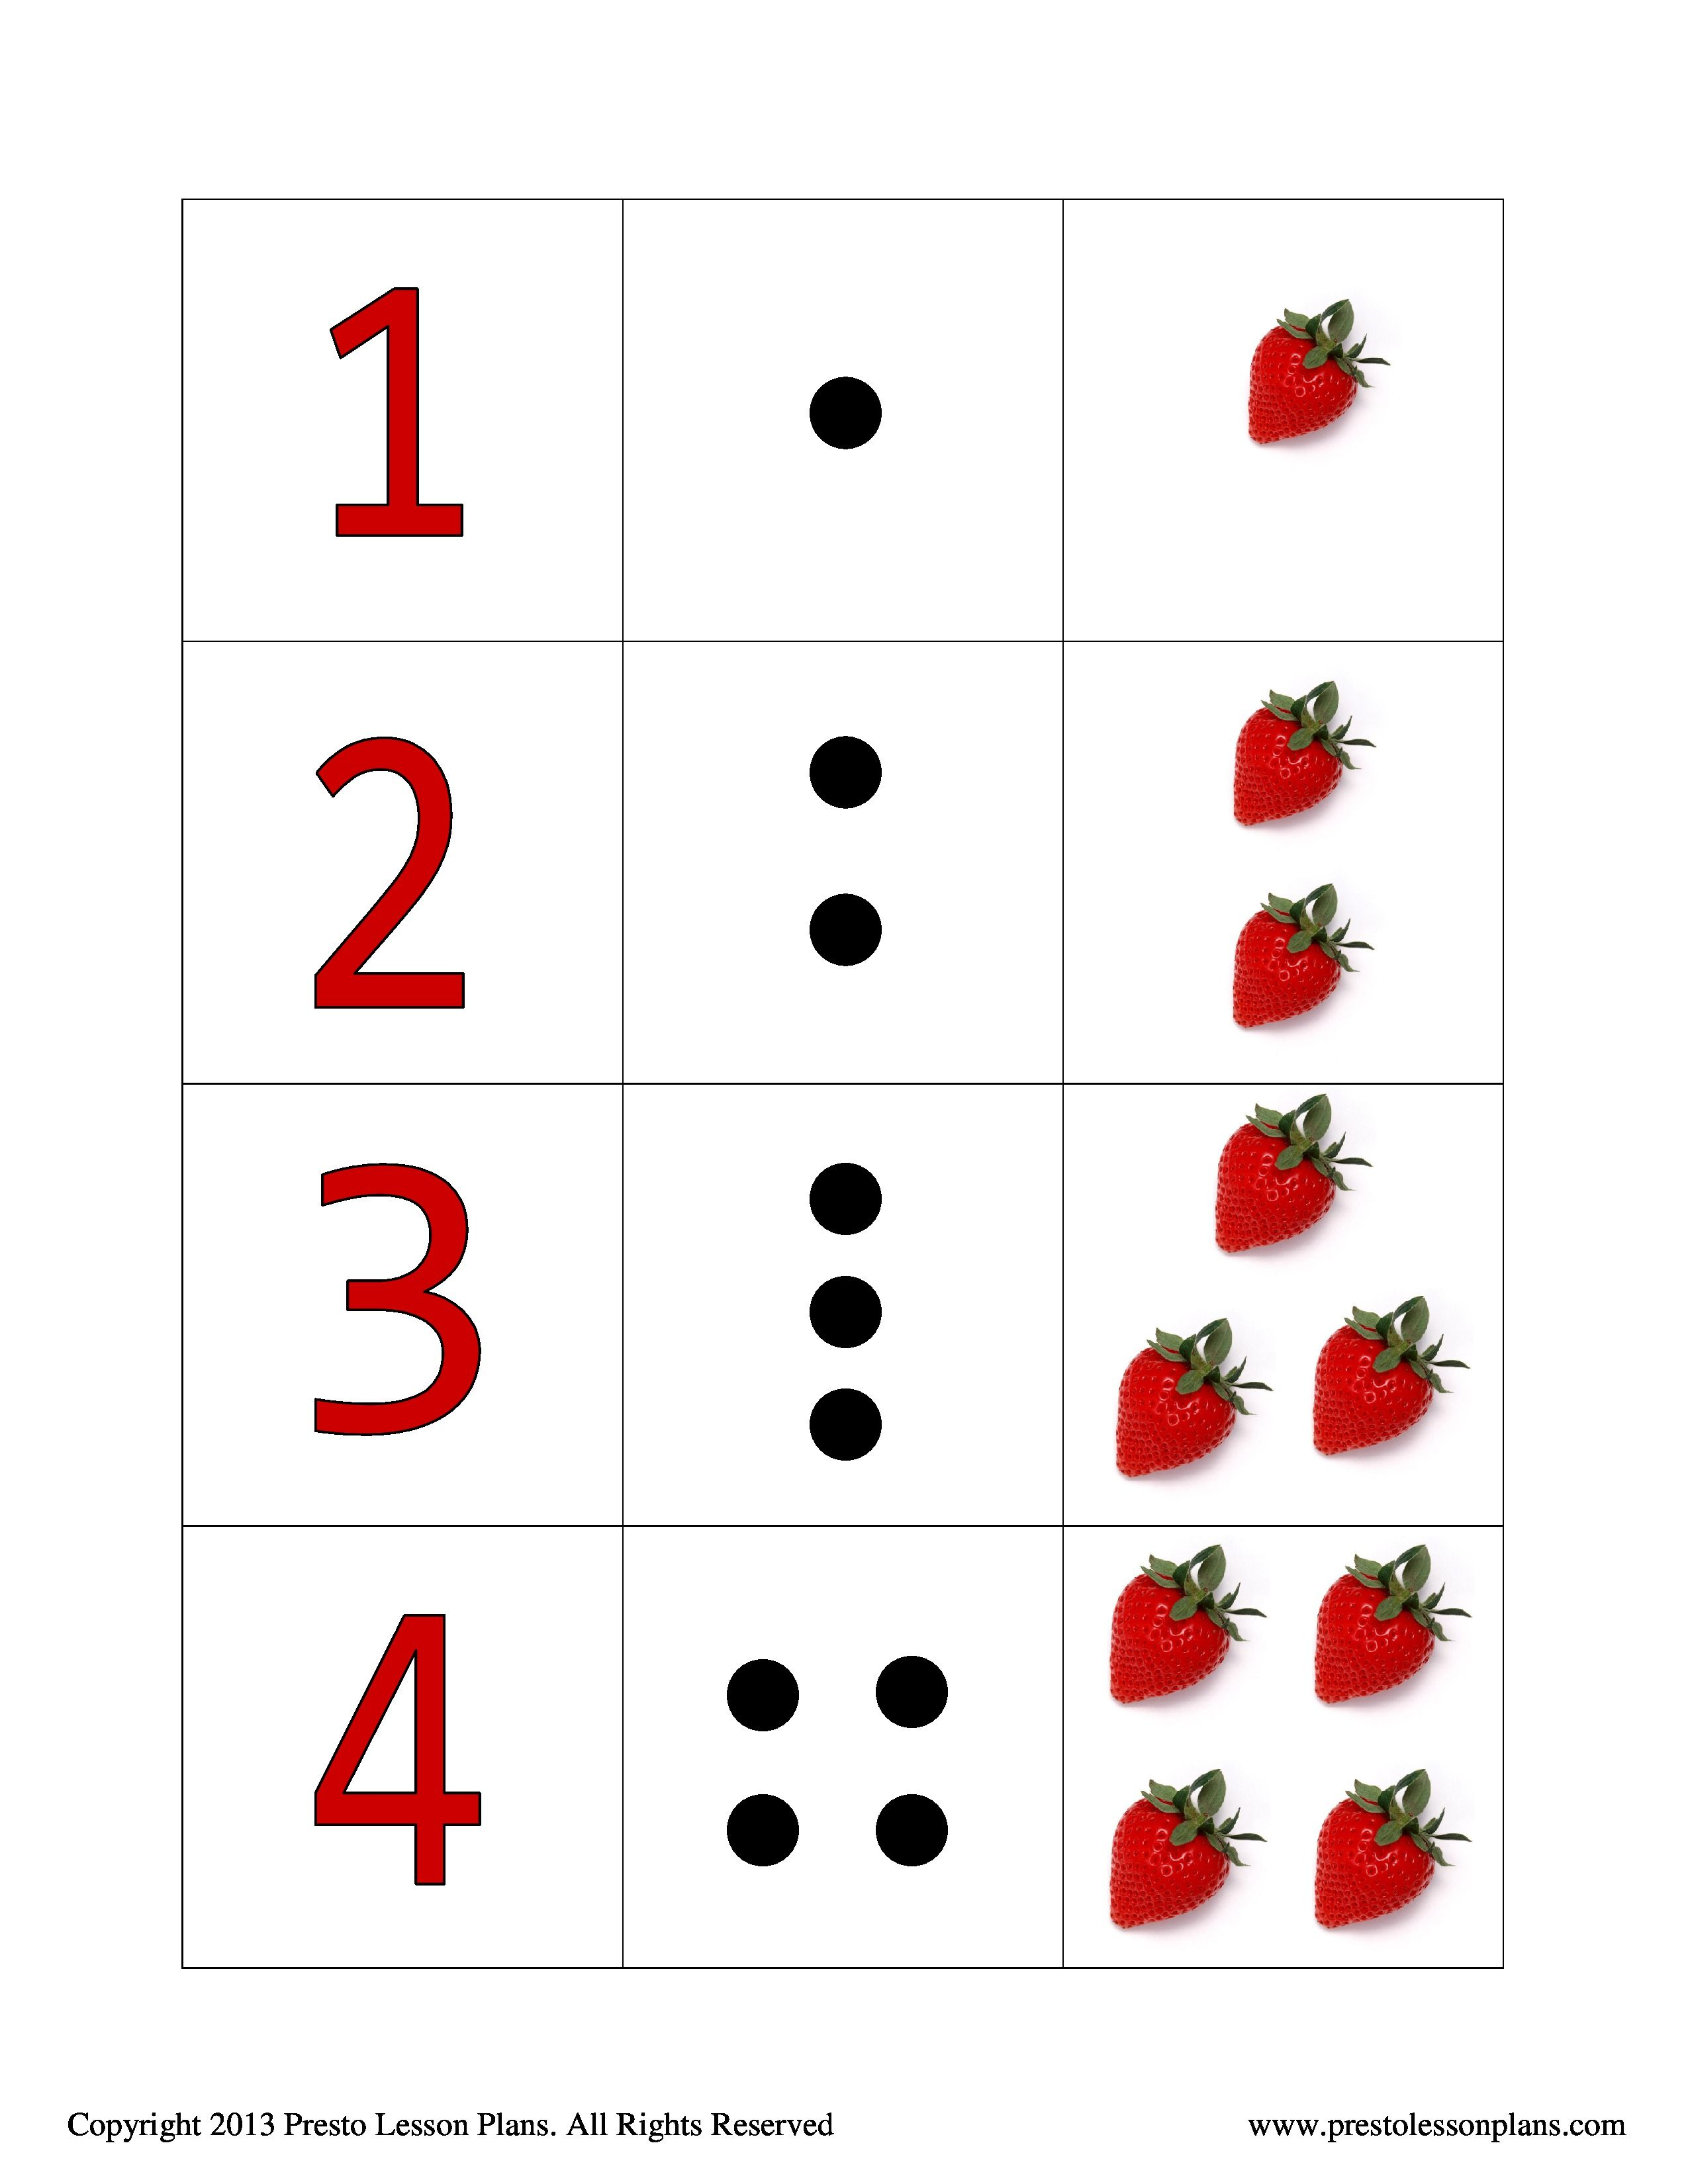 Strawberry Counting Cards Help Preschoolers To Learn Basic